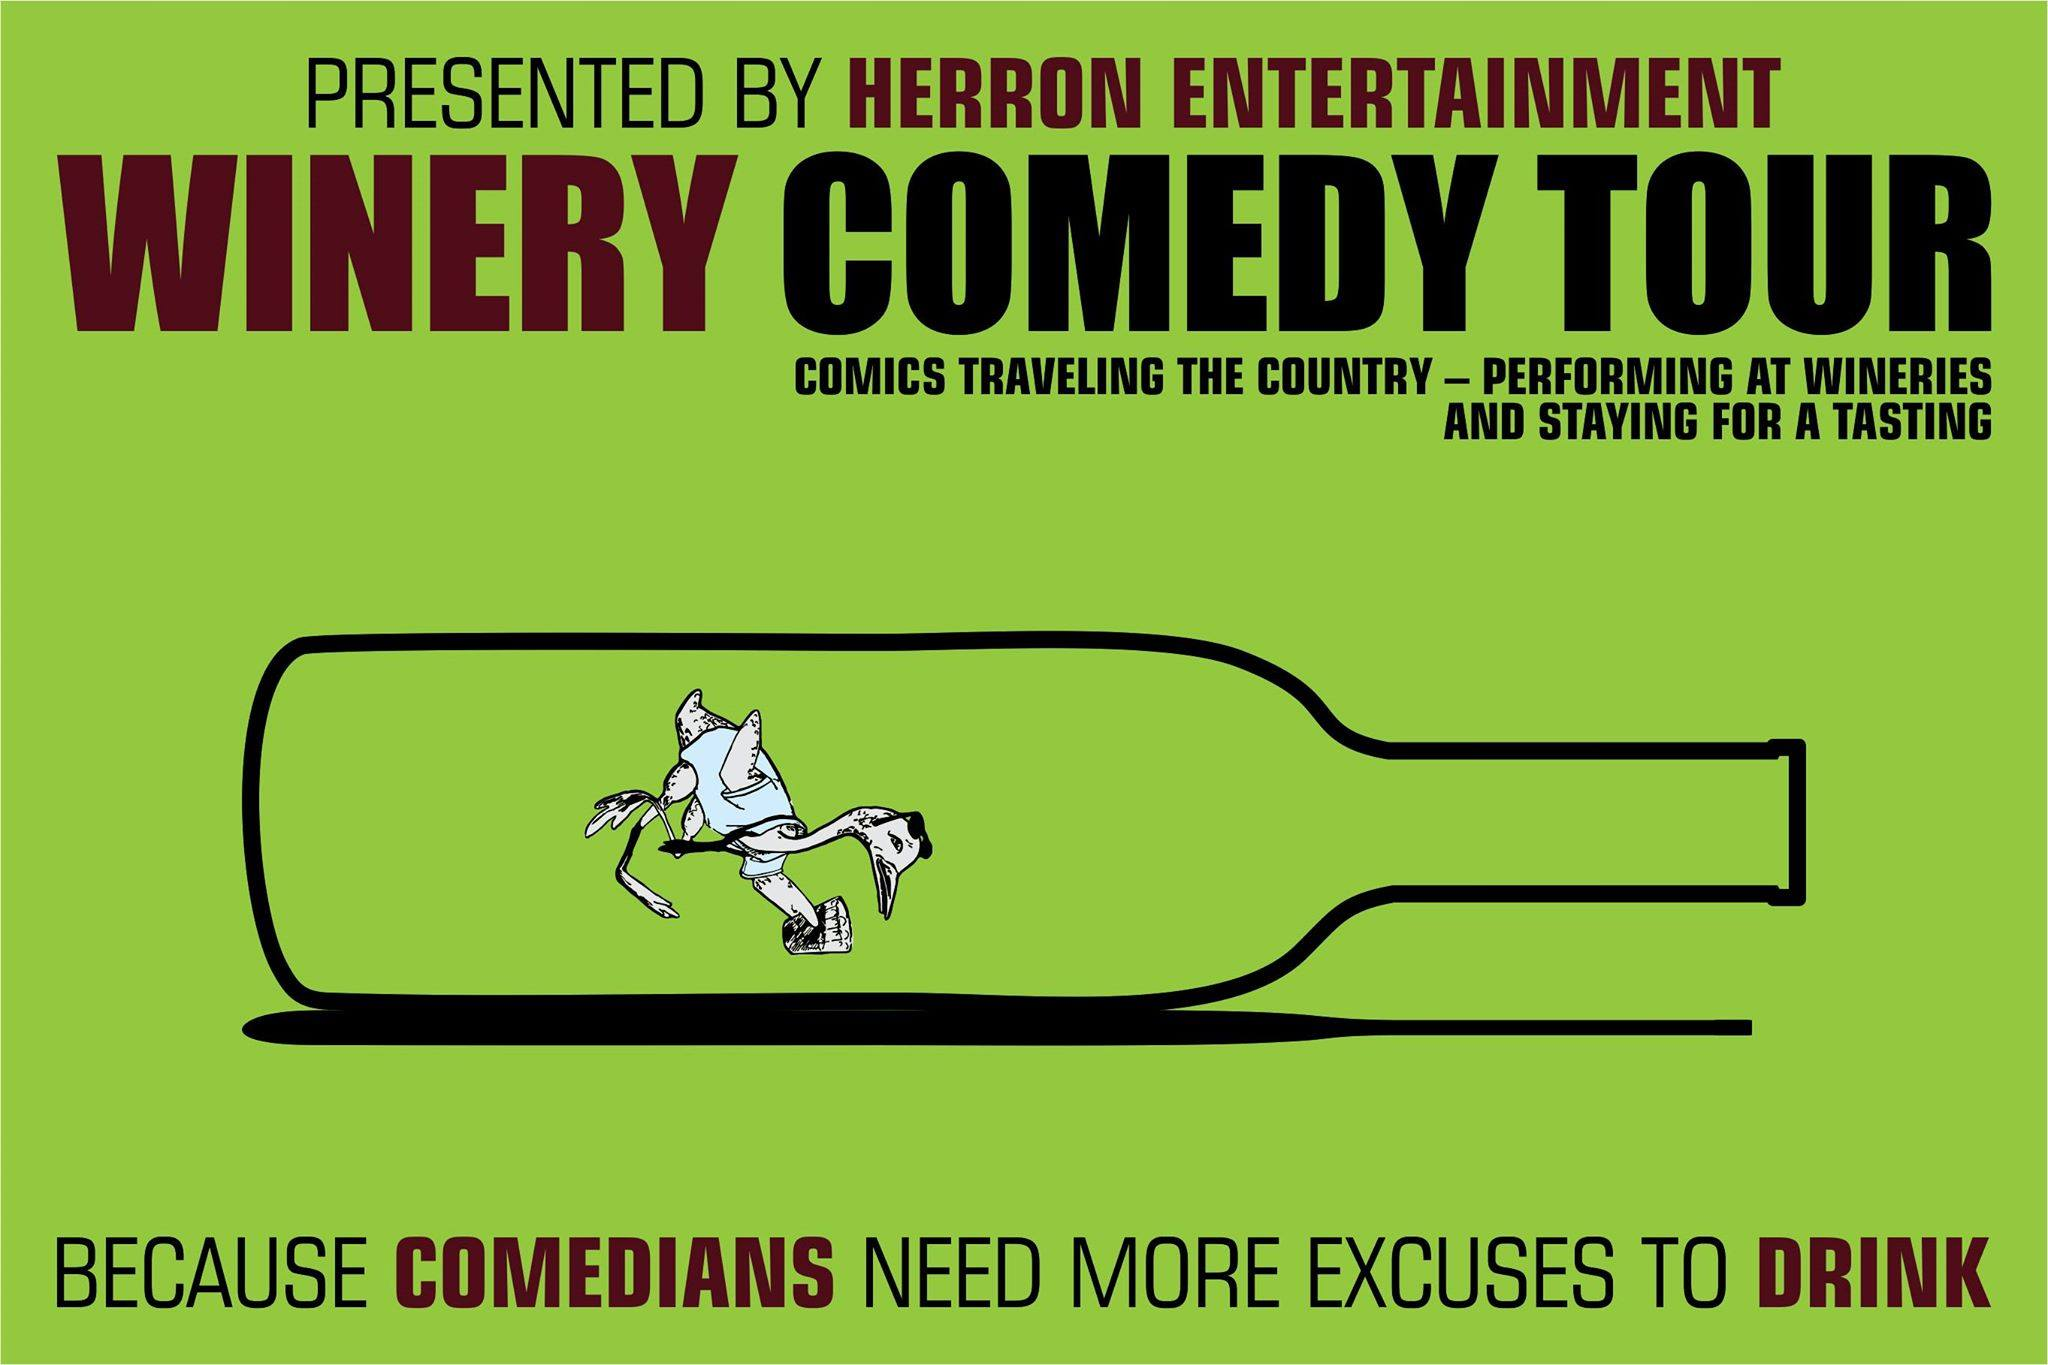 The Winery Comedy Tour at Marietta Wine Cellars